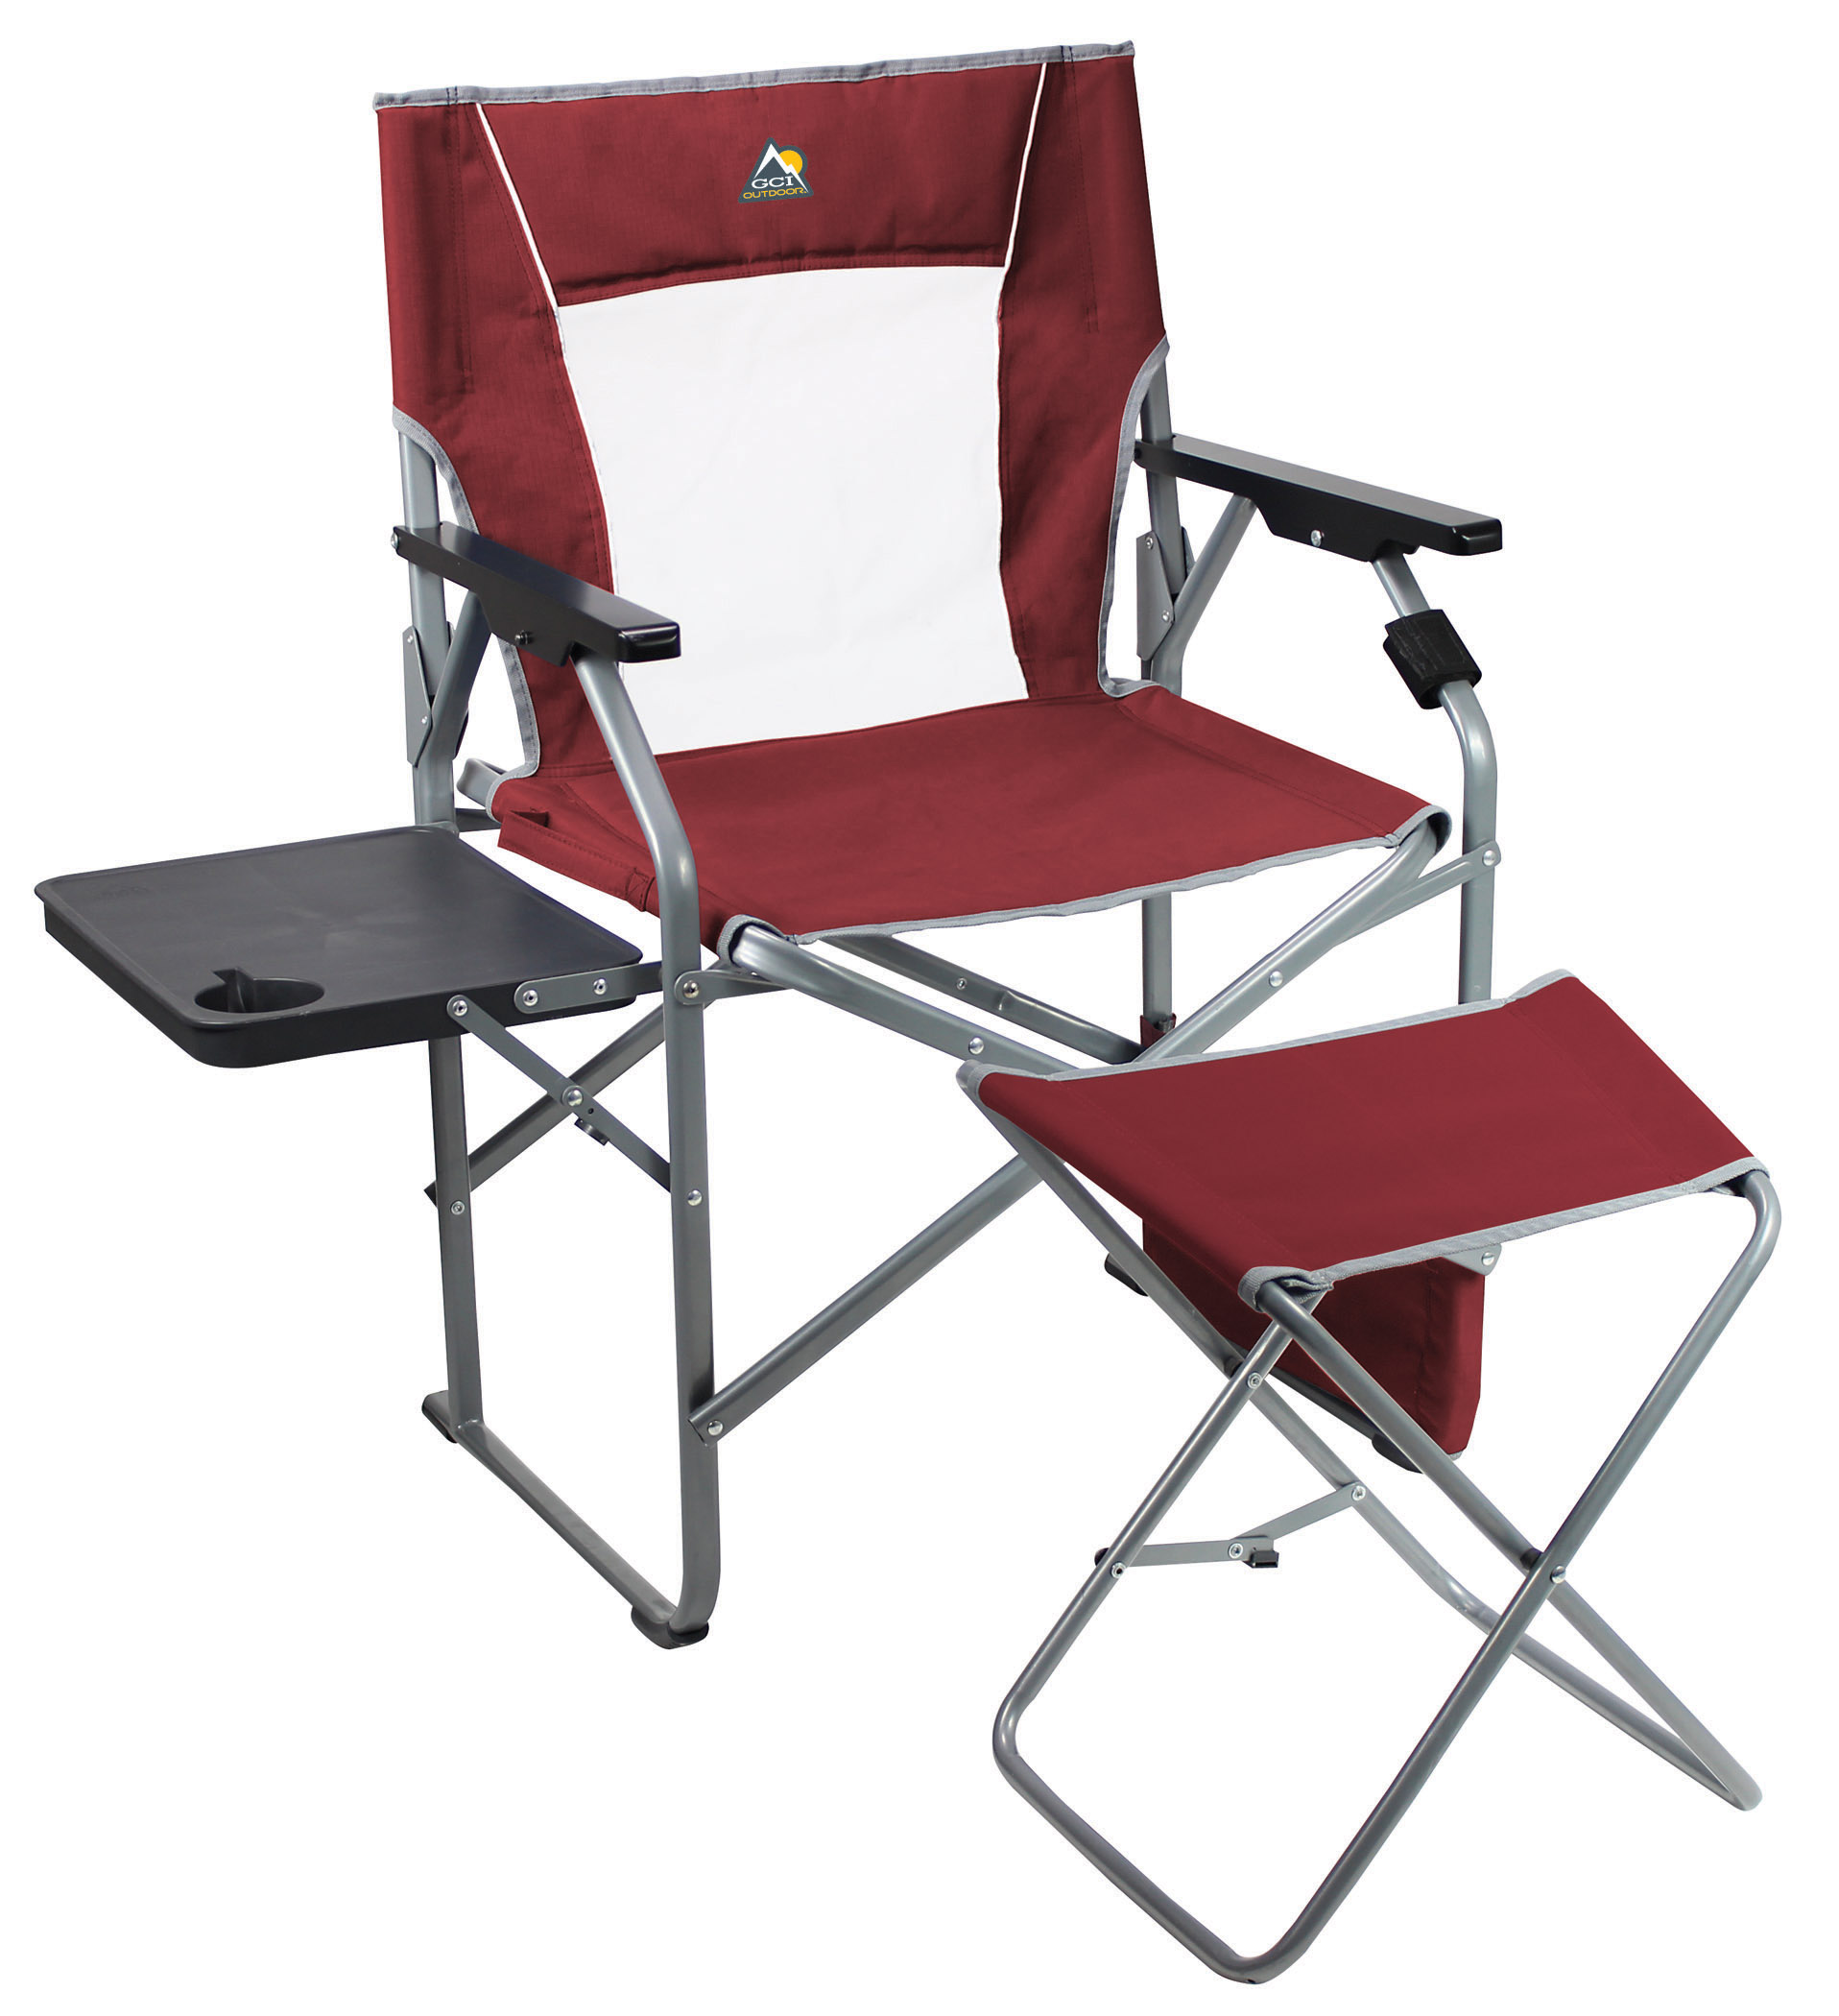 GCI Outdoors 3 Position Director s Chair with Ottoman Cinnamon Red